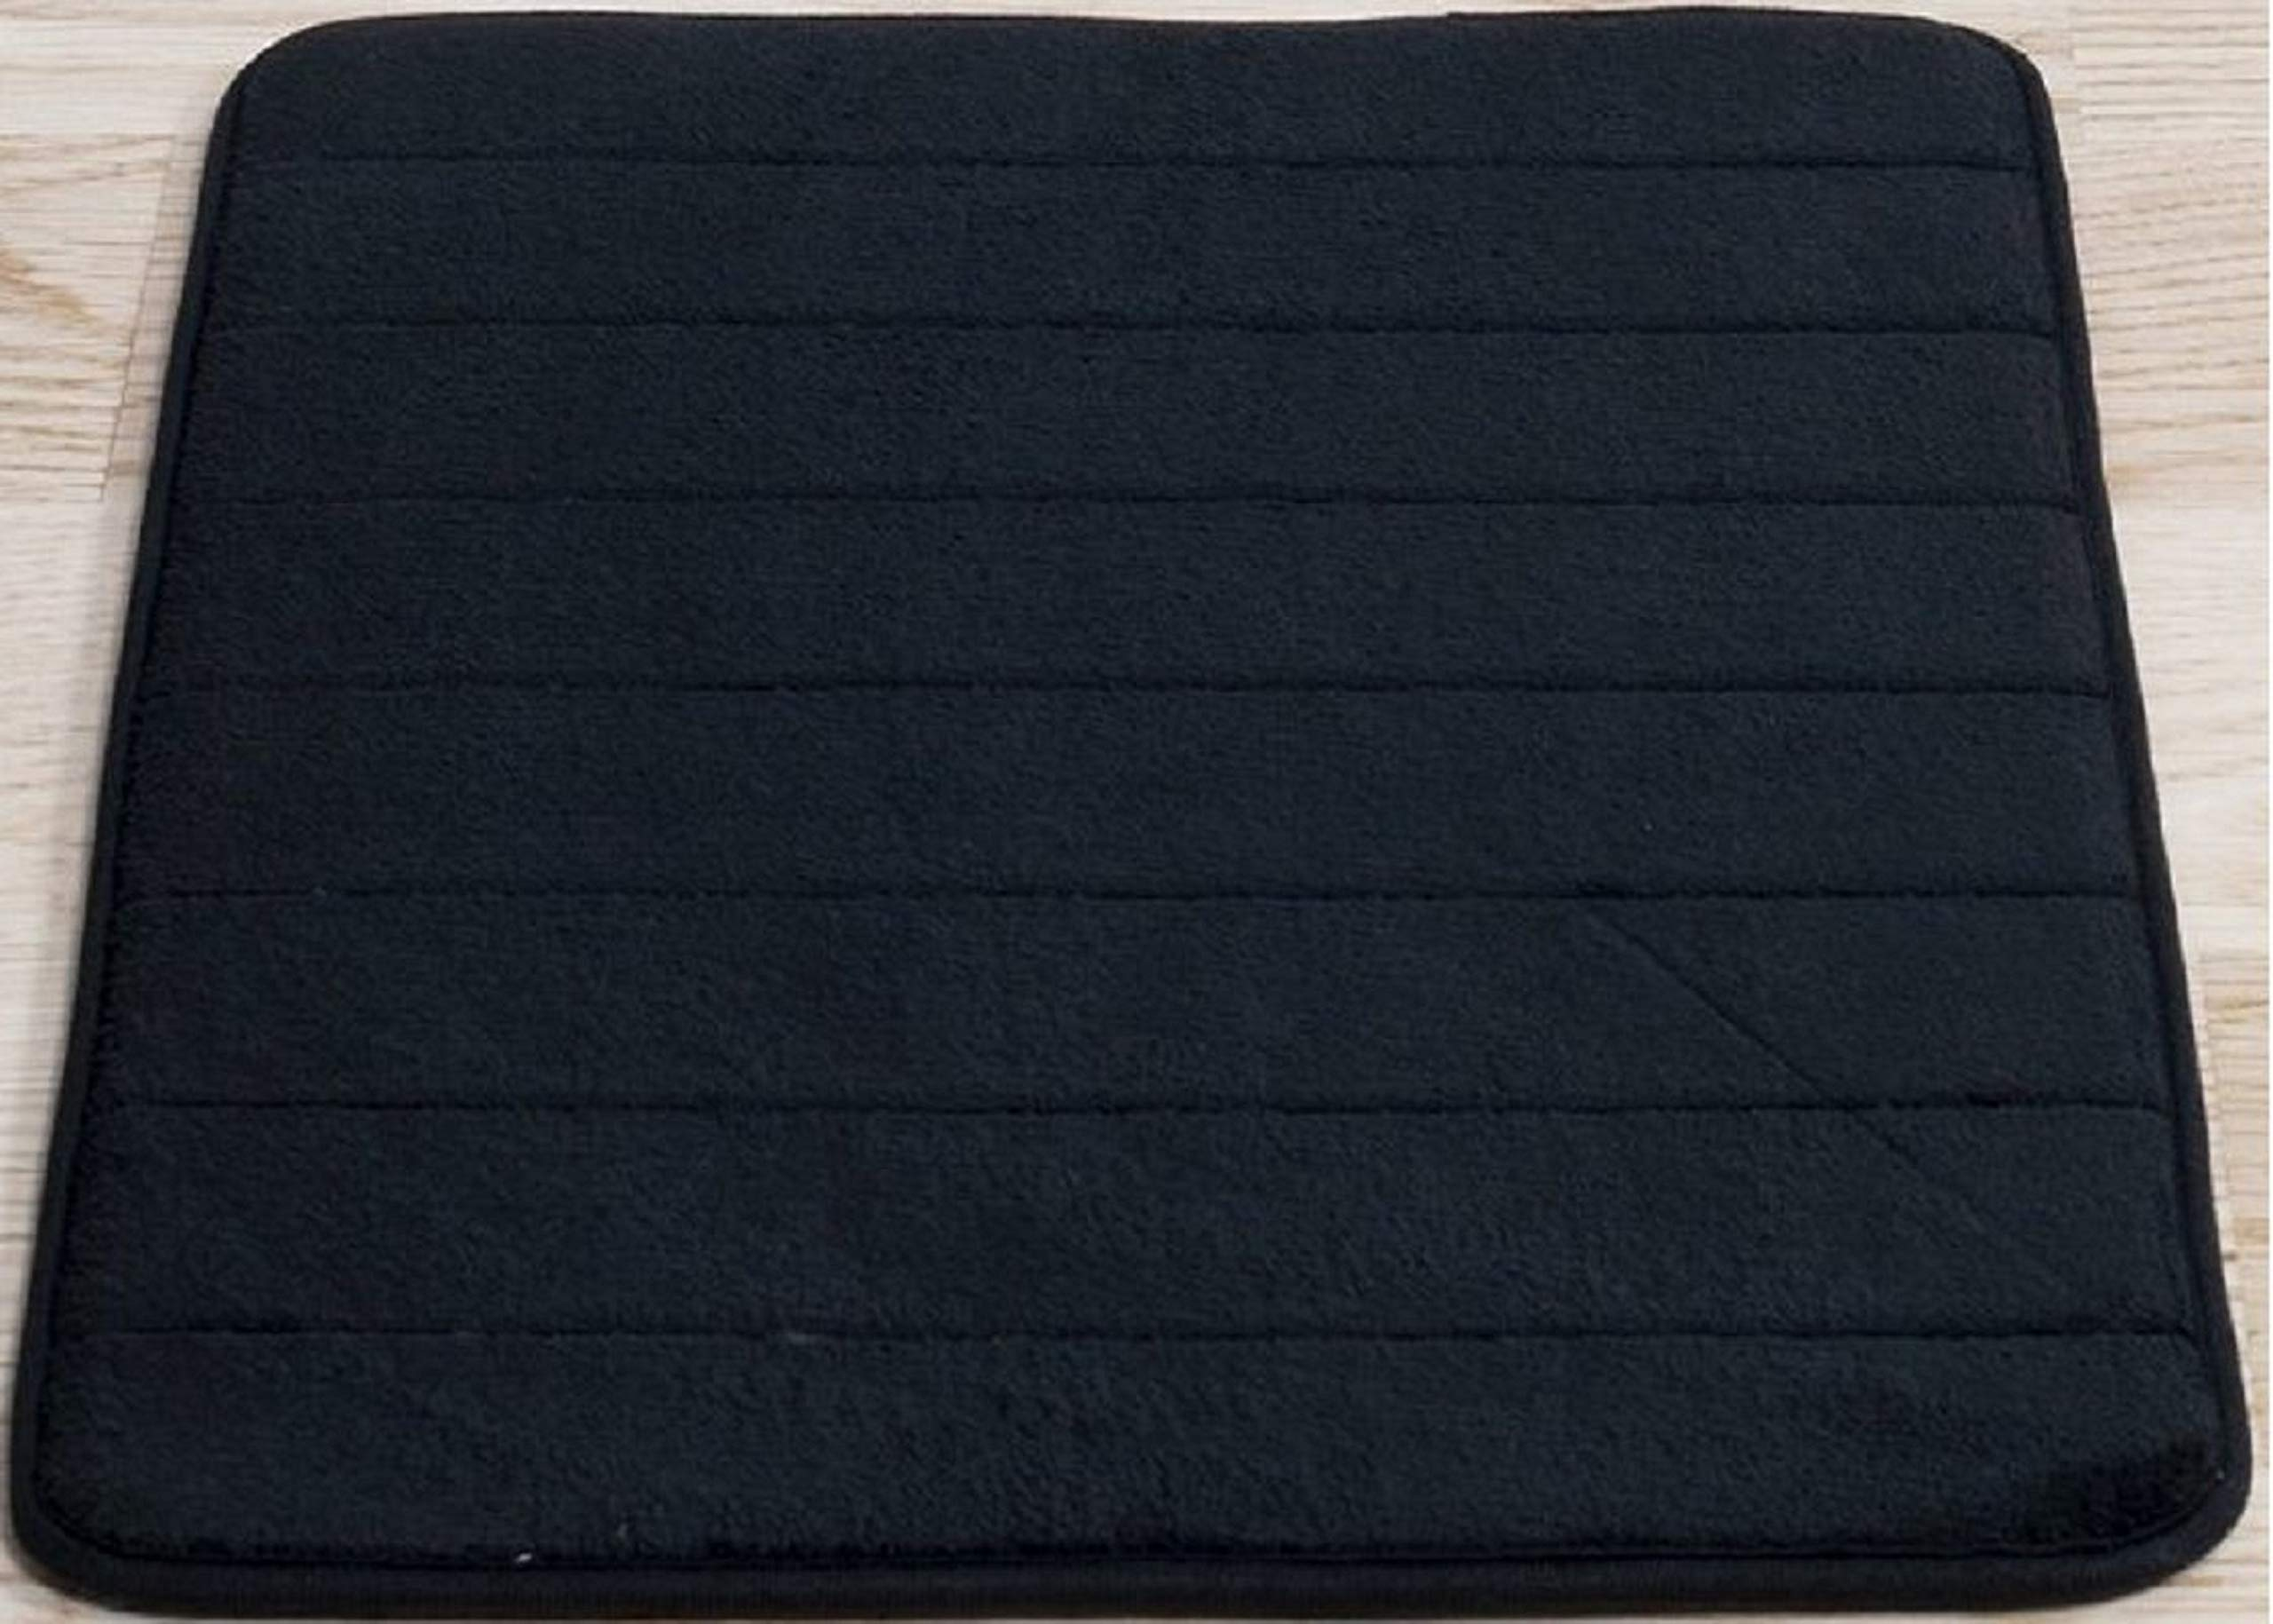 Black Memory Foam Bath Mat Incredibly Soft And Absorbent Rug Cozy Velvet Non Slip Mats Use For Kitchen Or Bathroom 17 Inch X 24 Inch Black